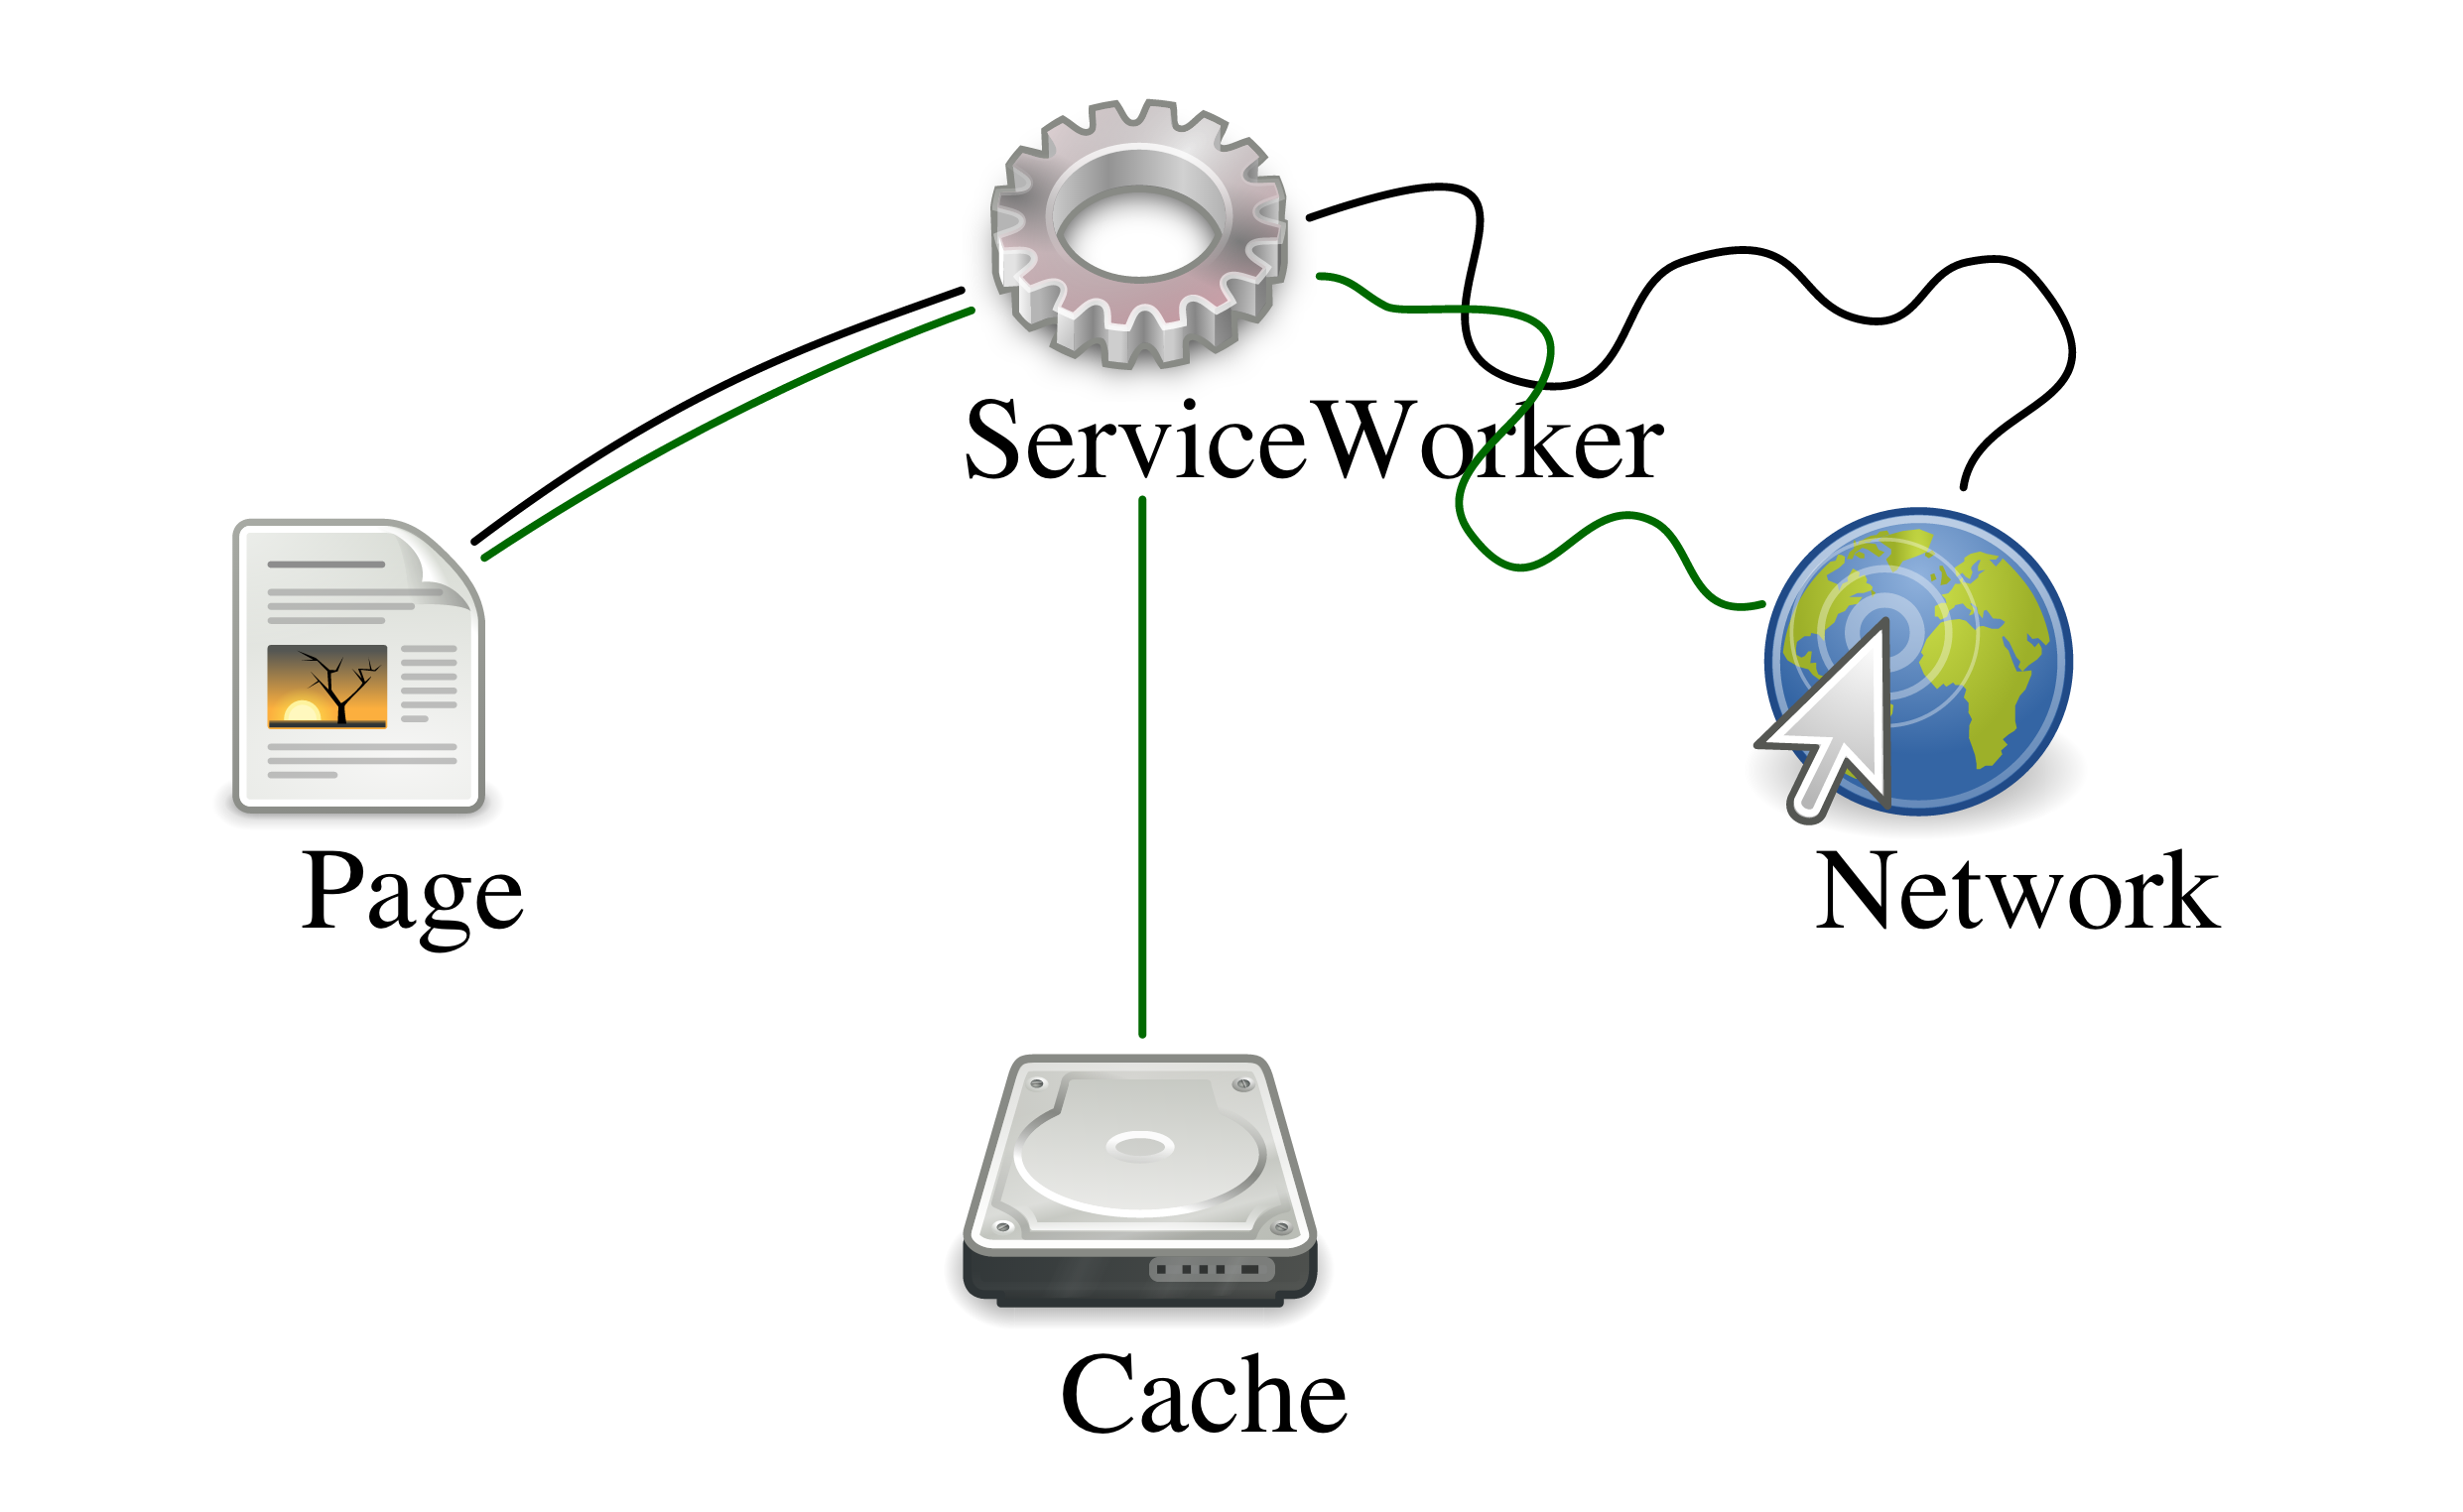 Service worker image